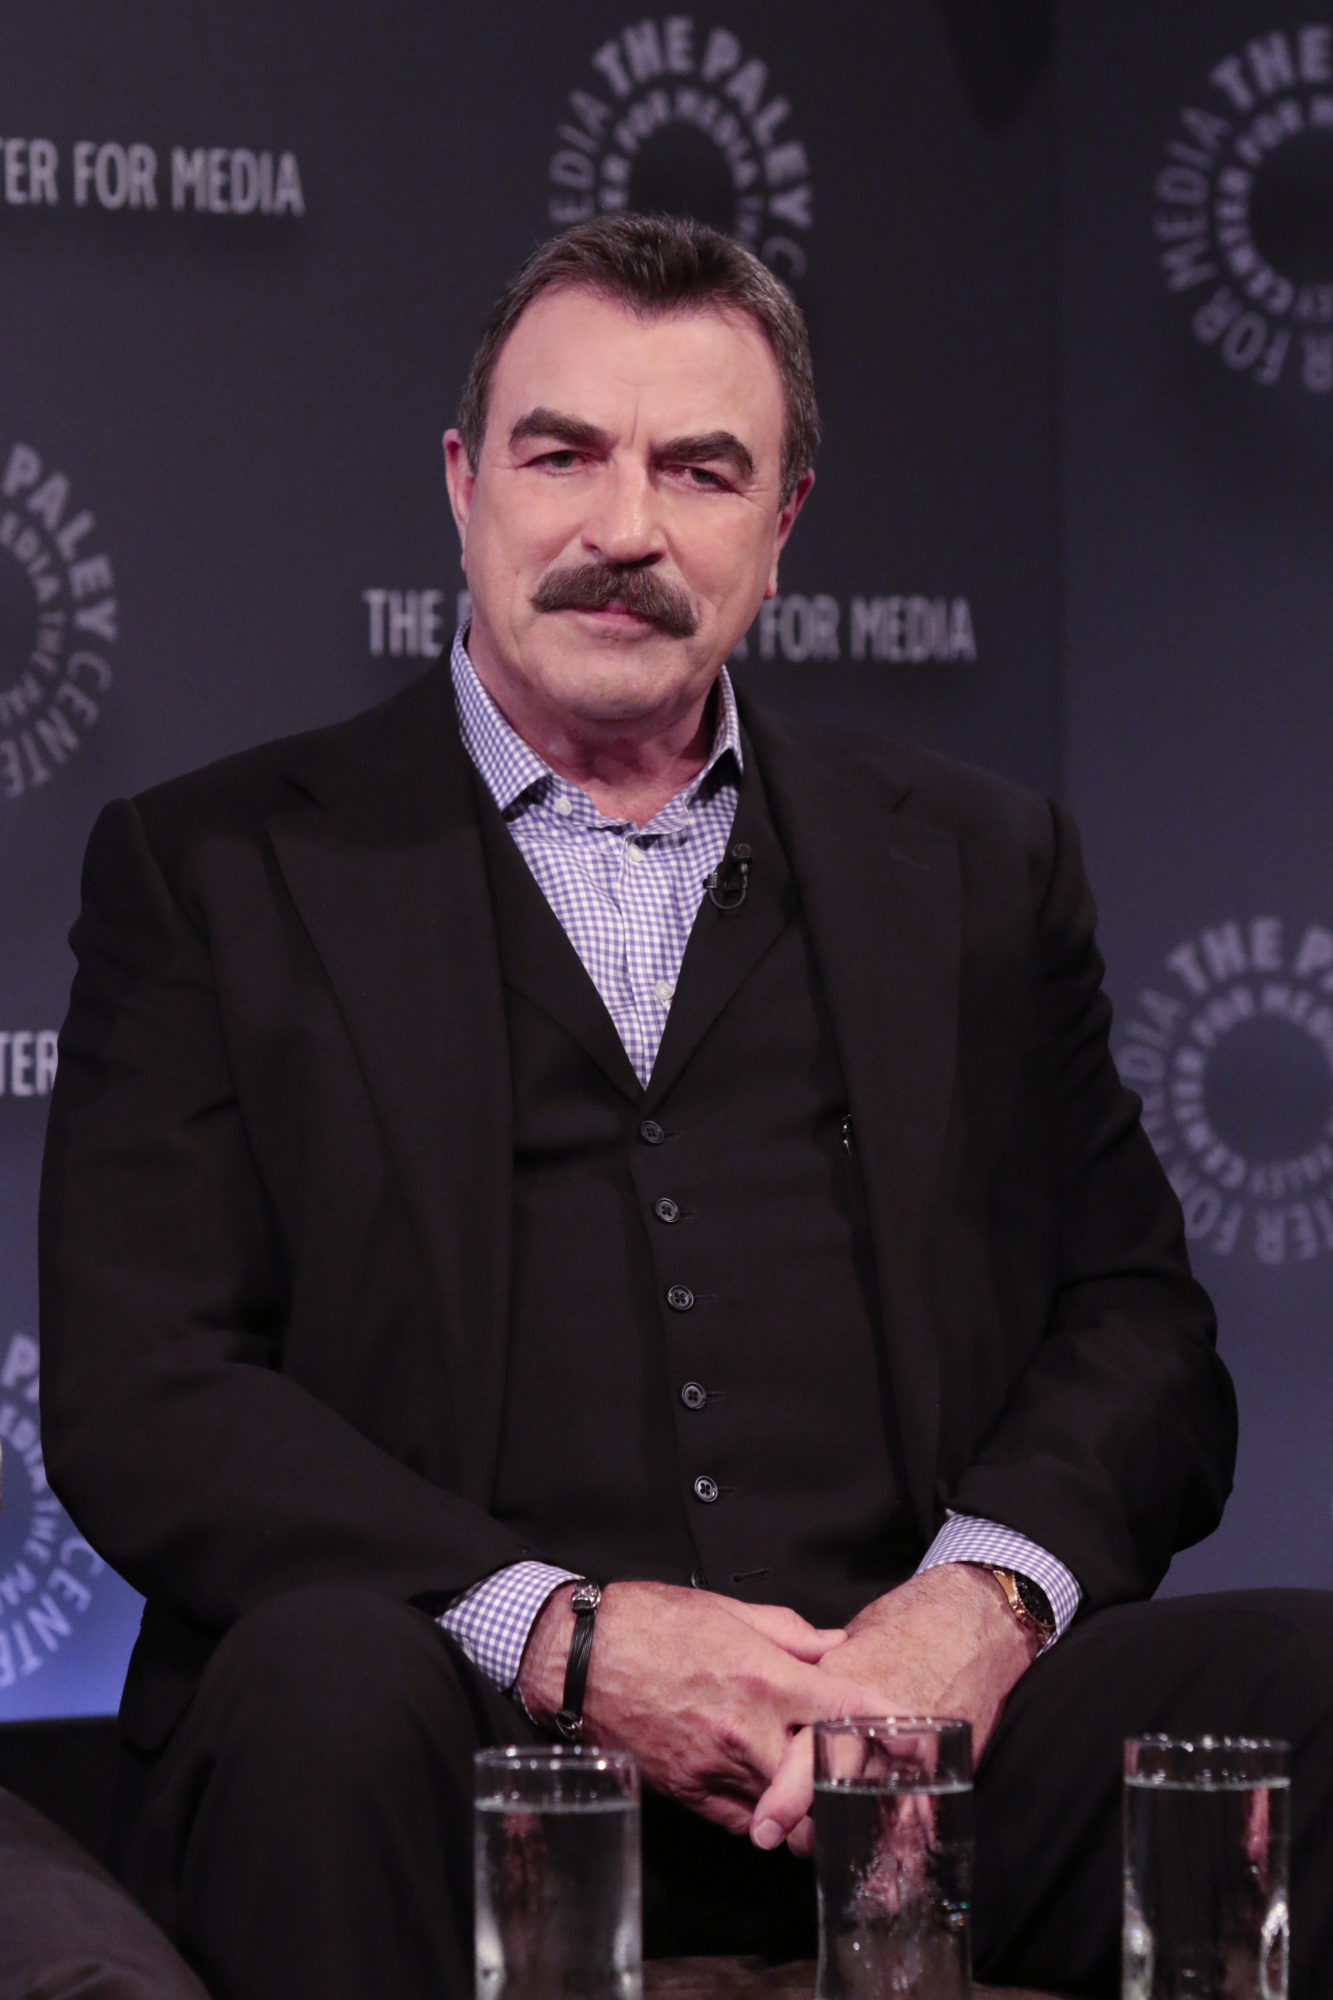 9. Tom Selleck's intently-listening face.